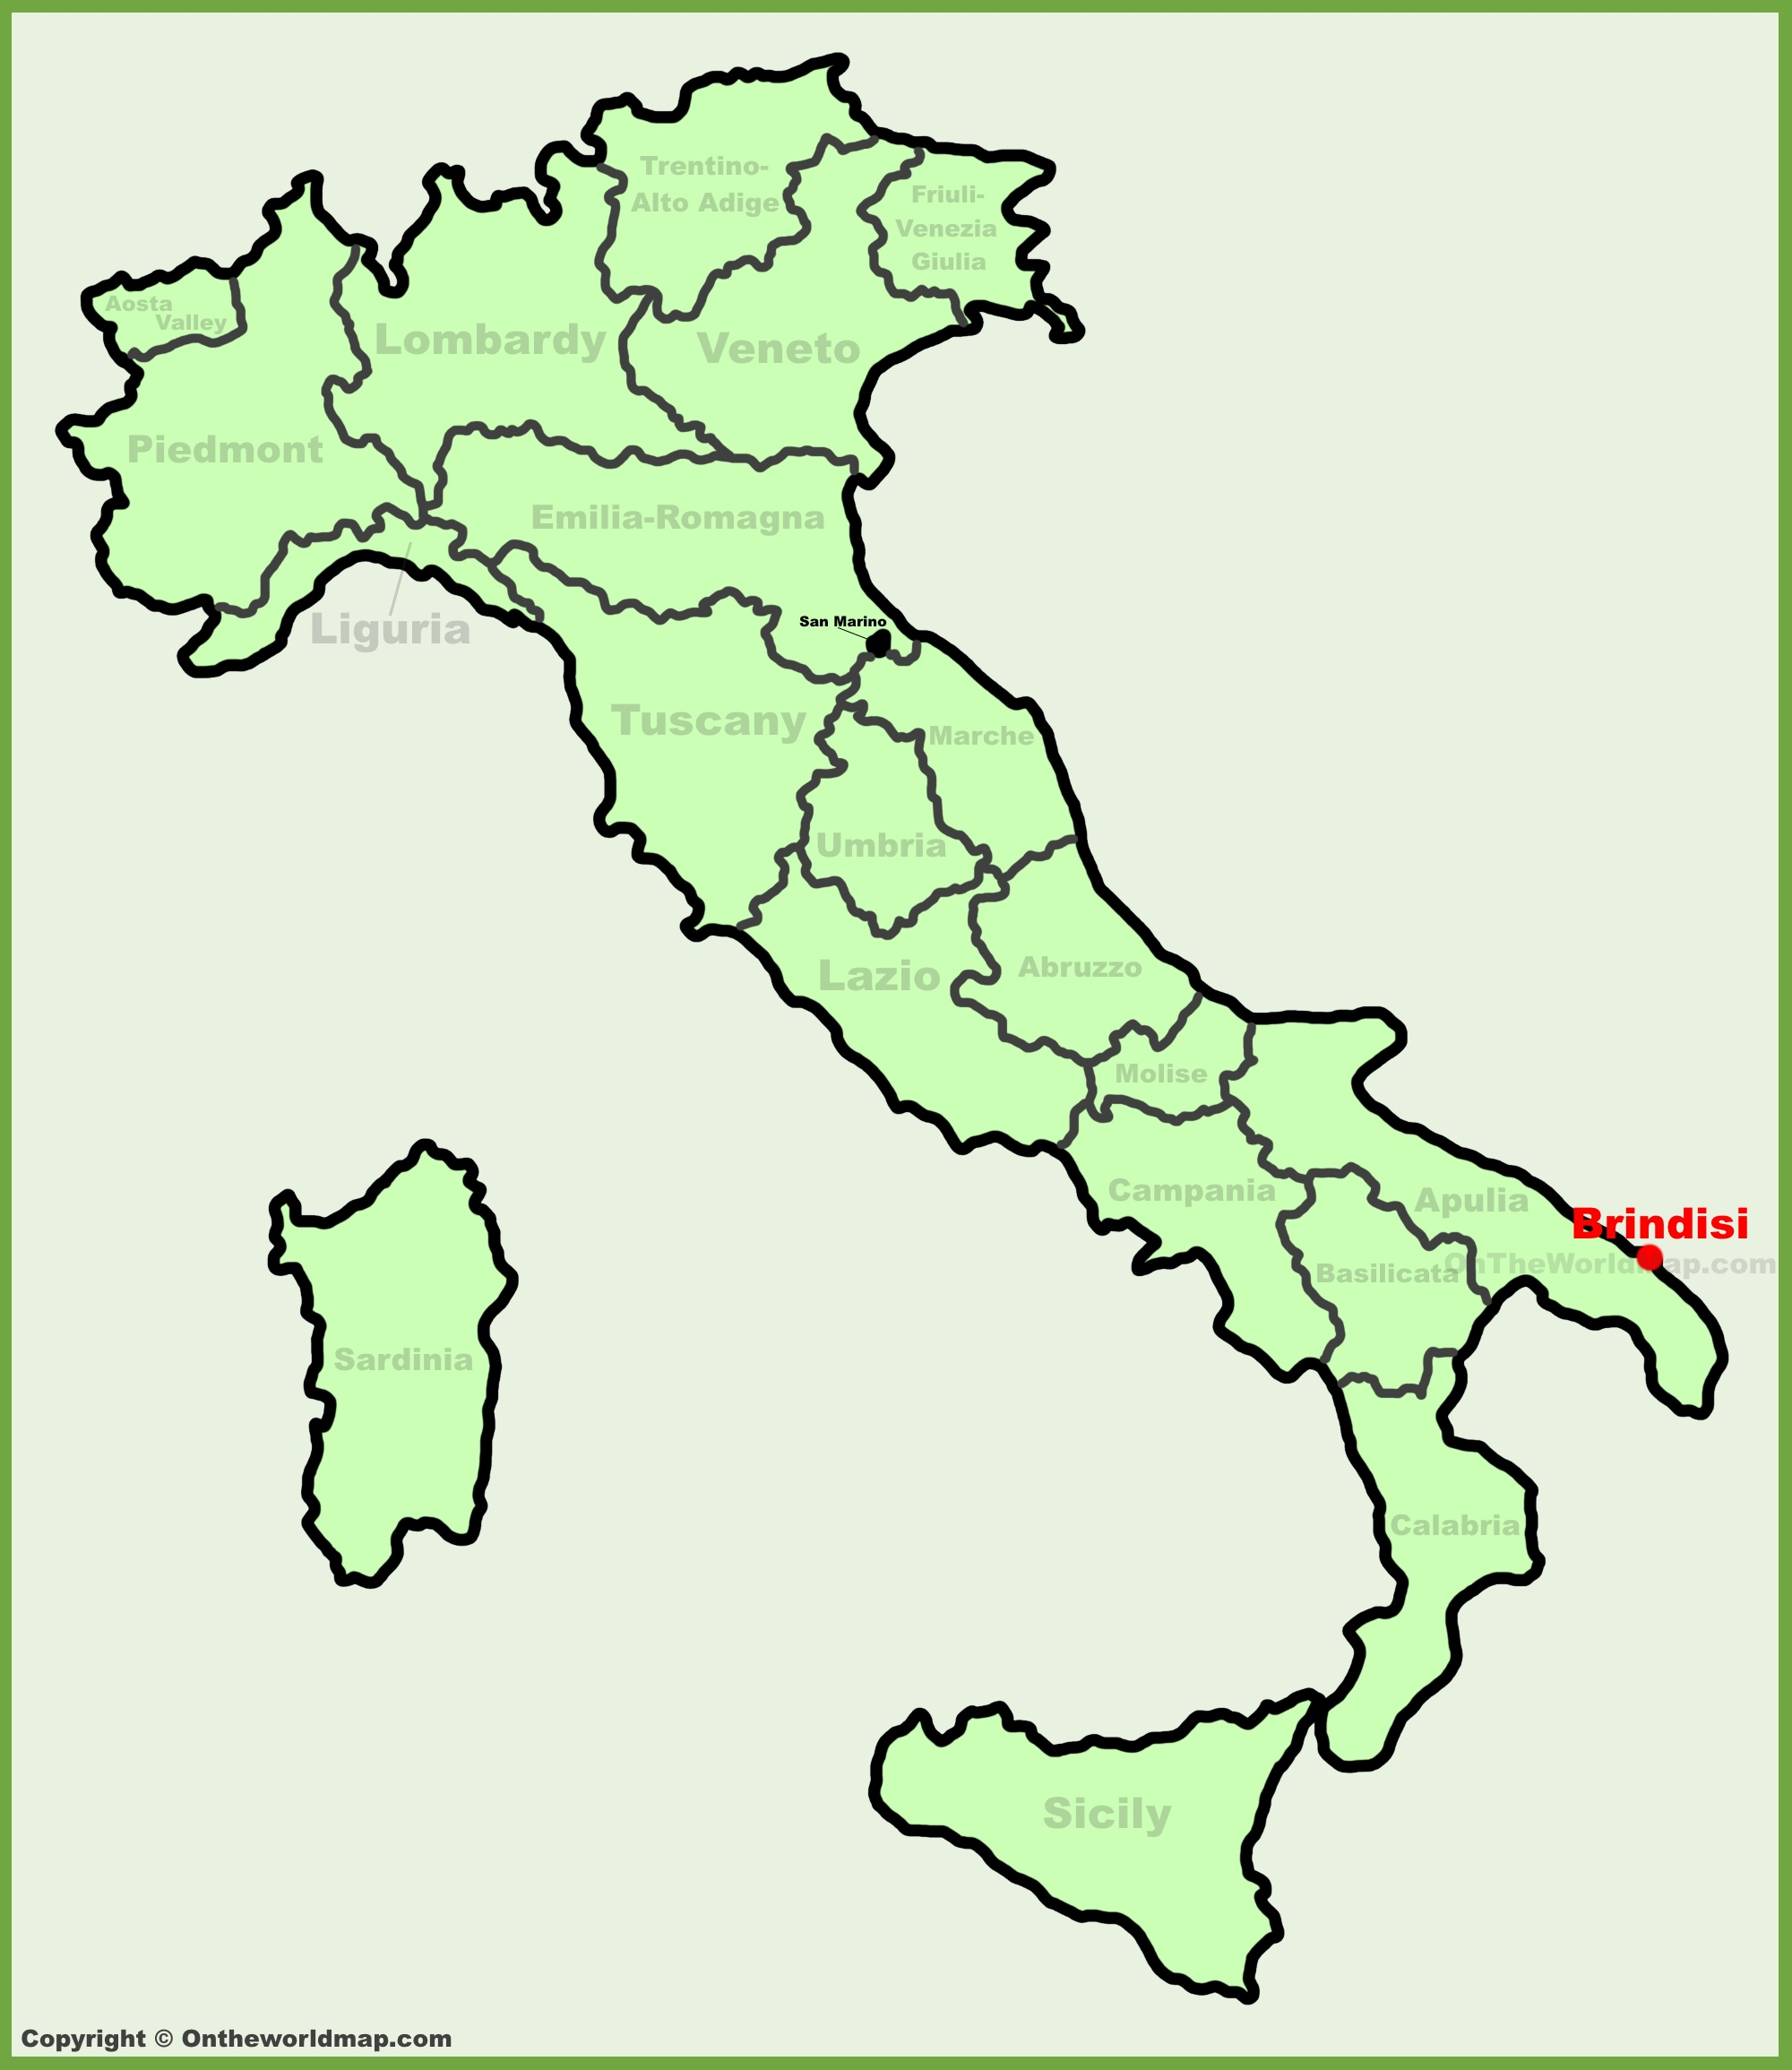 Brindisi location on the Italy map